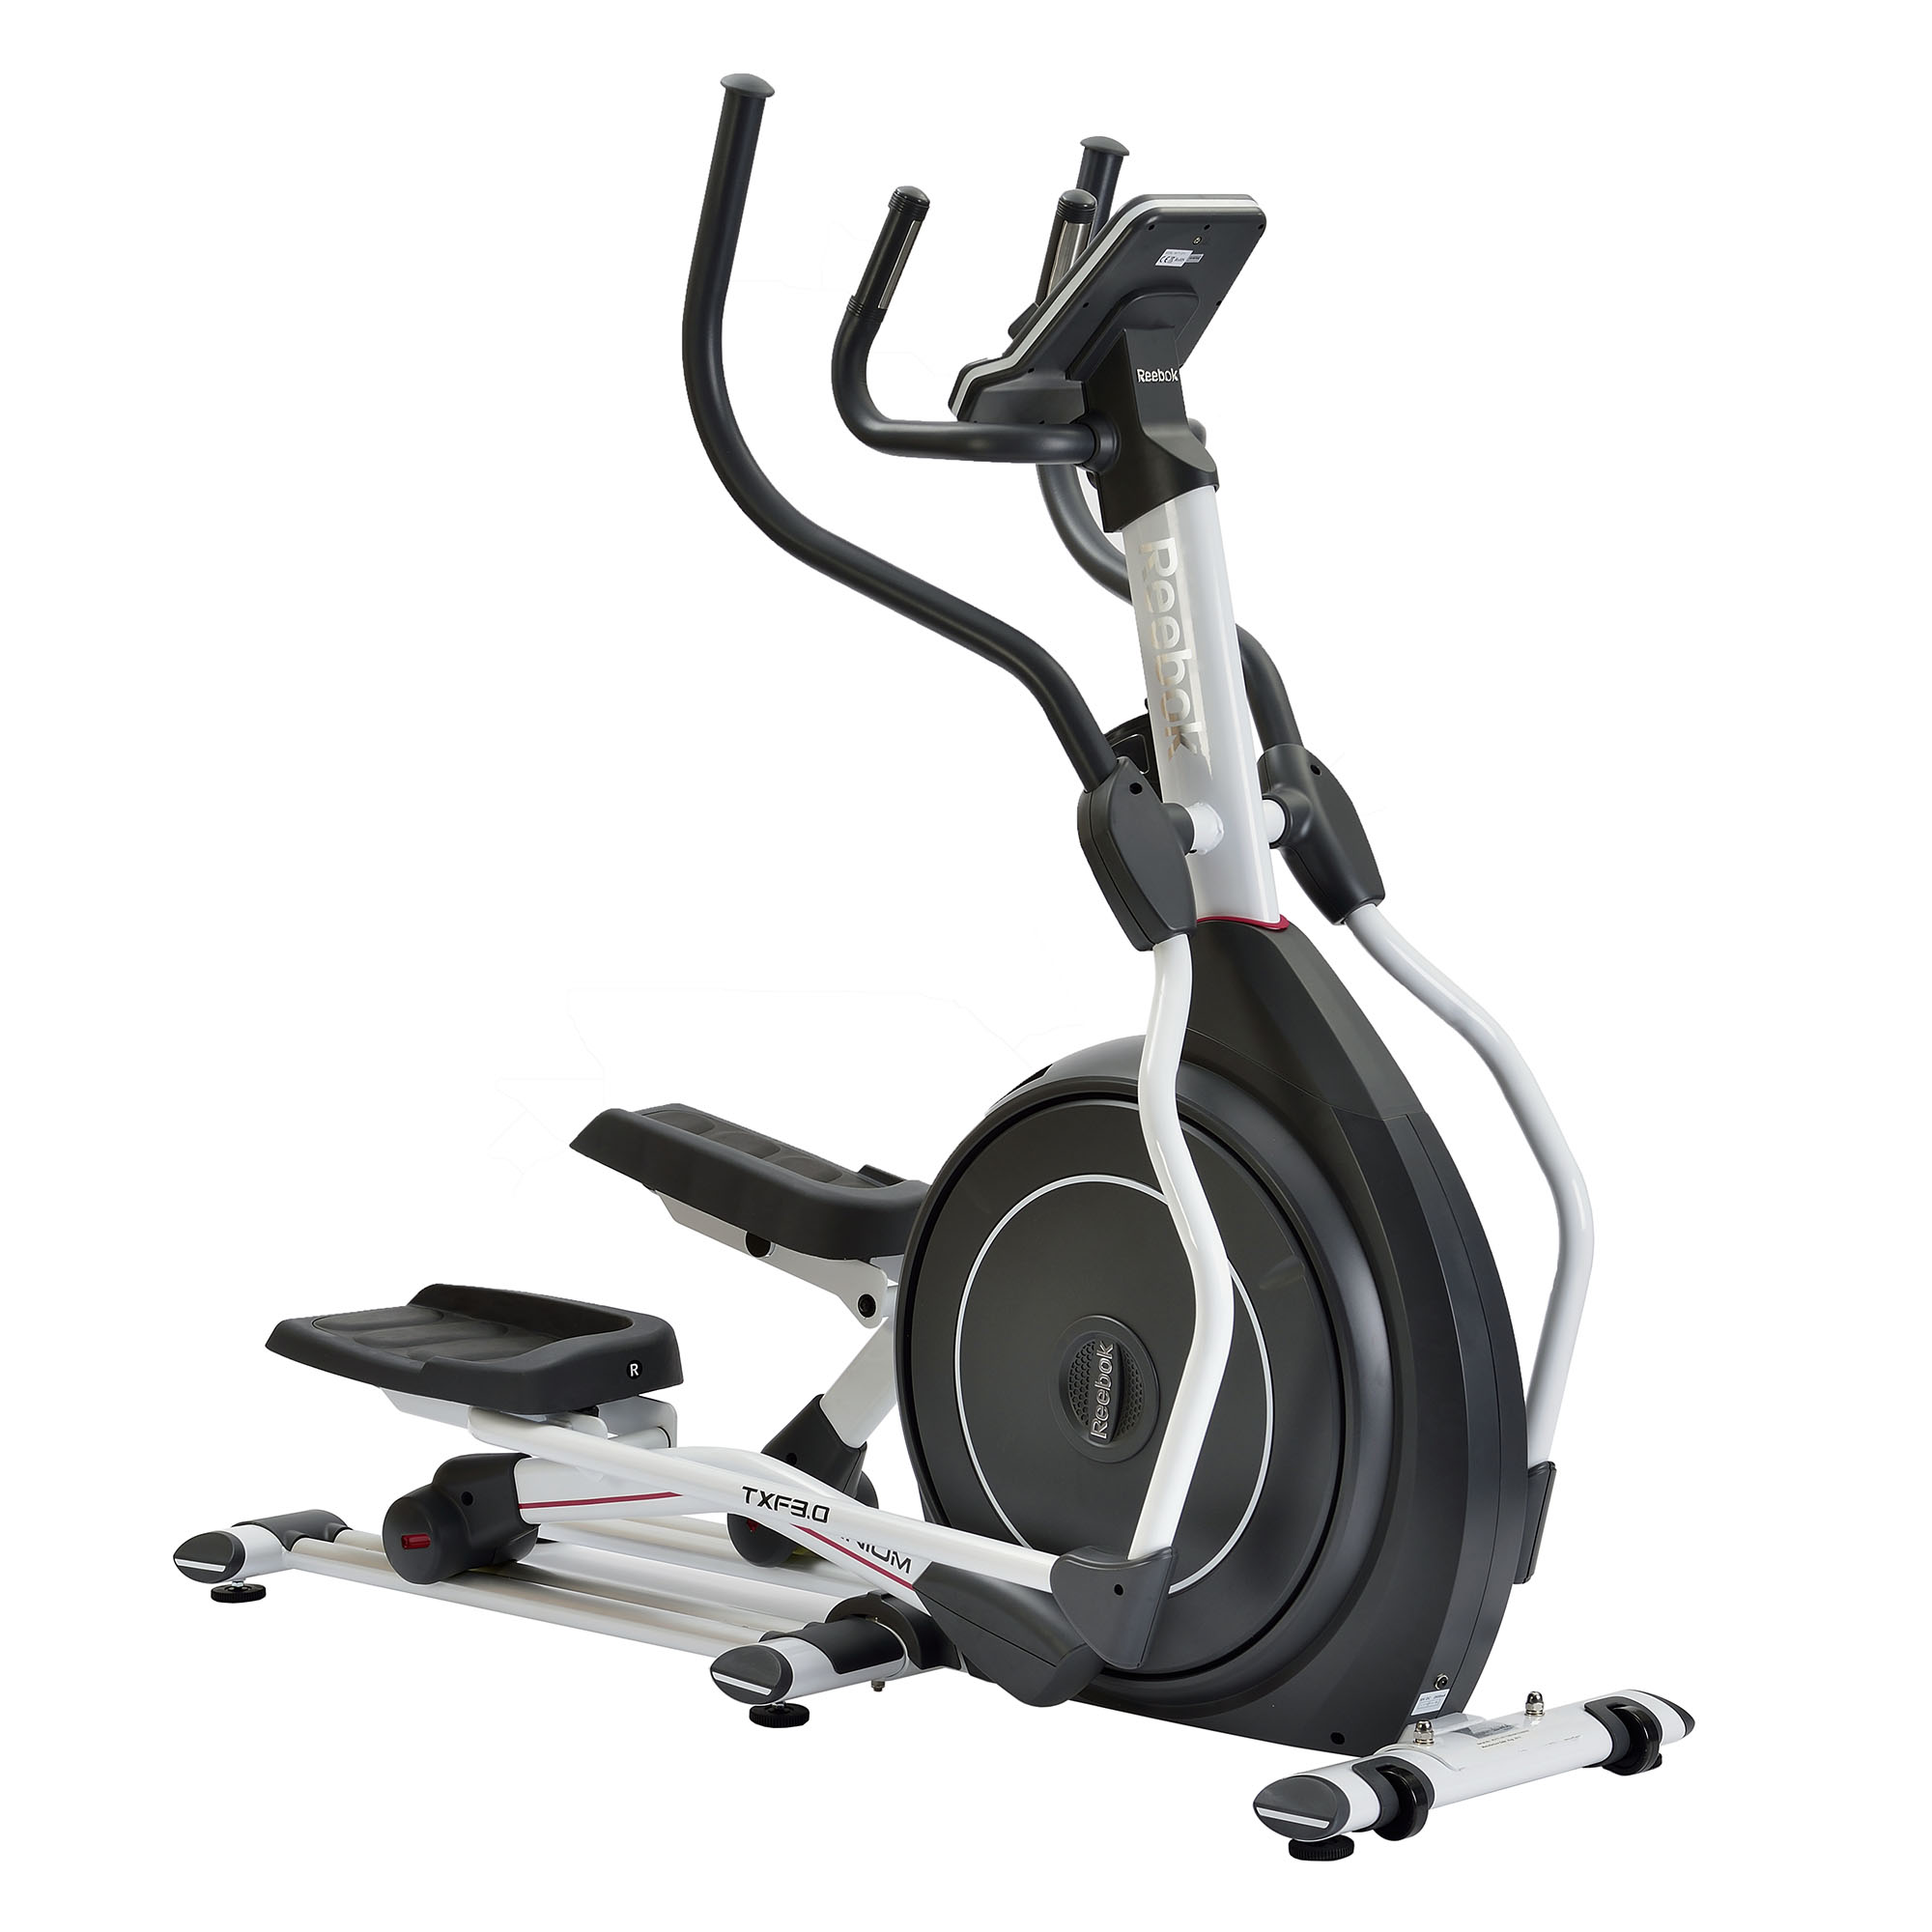 Reebok Titanium TXF3.0 Elliptical Cross Trainer